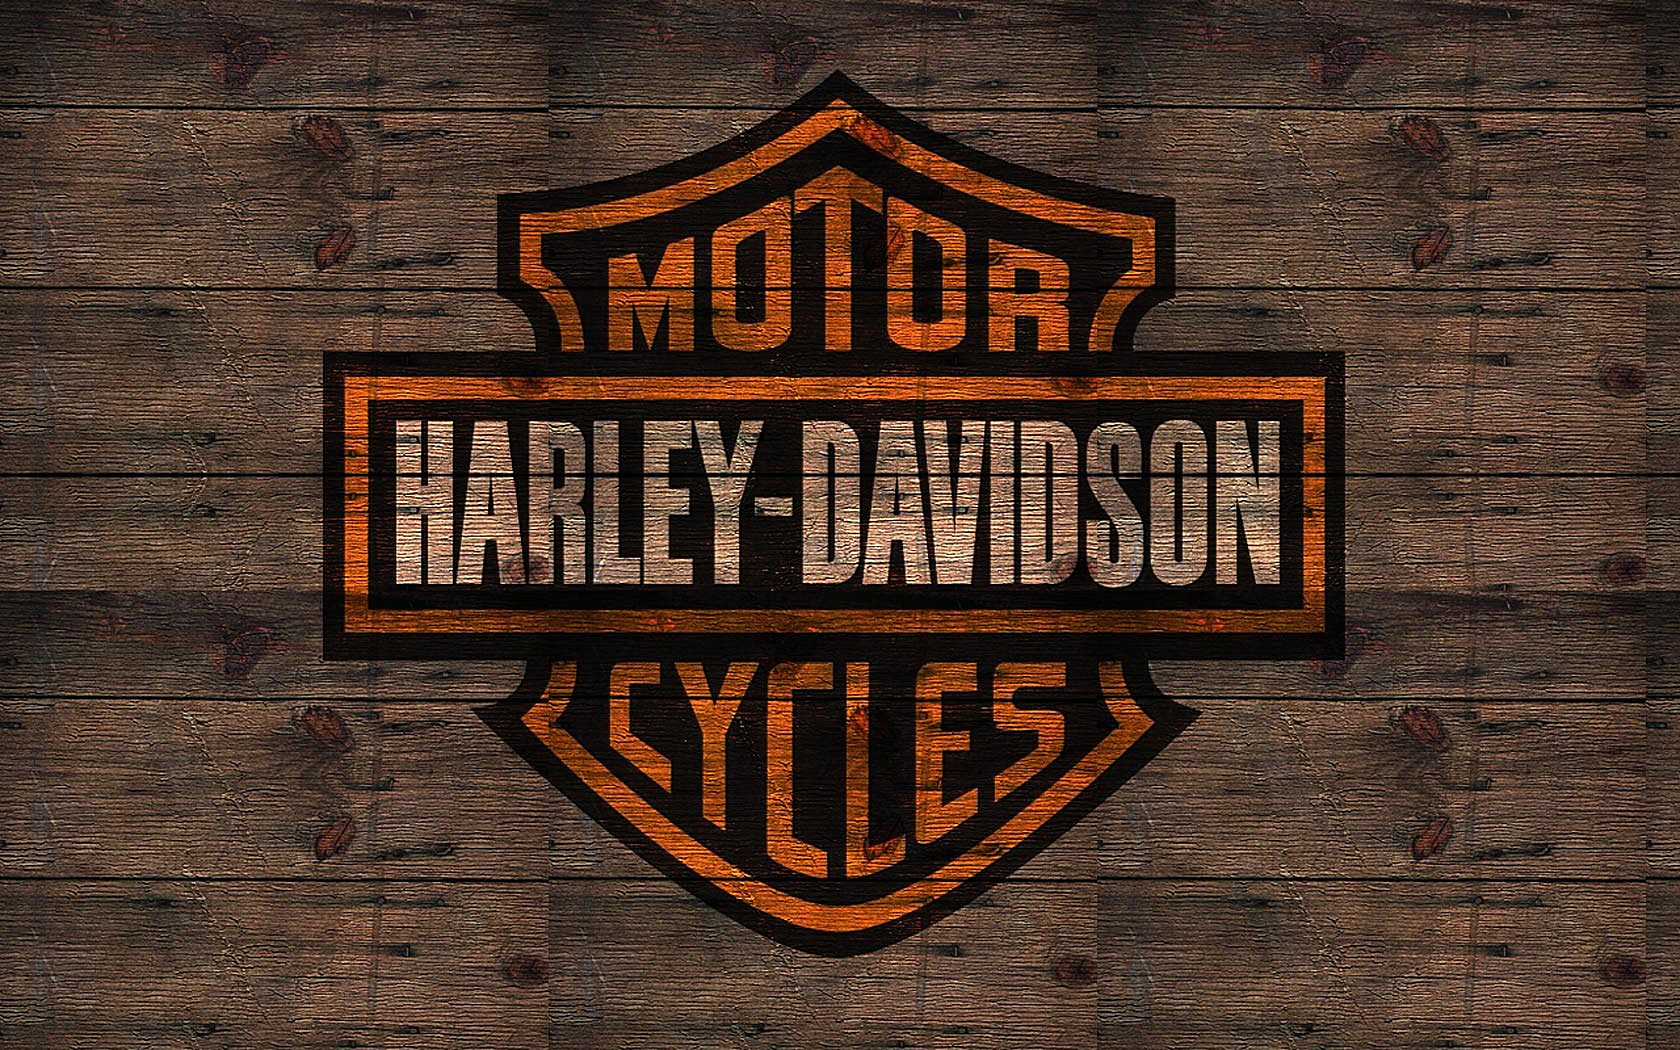 Harley Davidson Wallpaper Screensaver Super Wallpapers 1680x1050